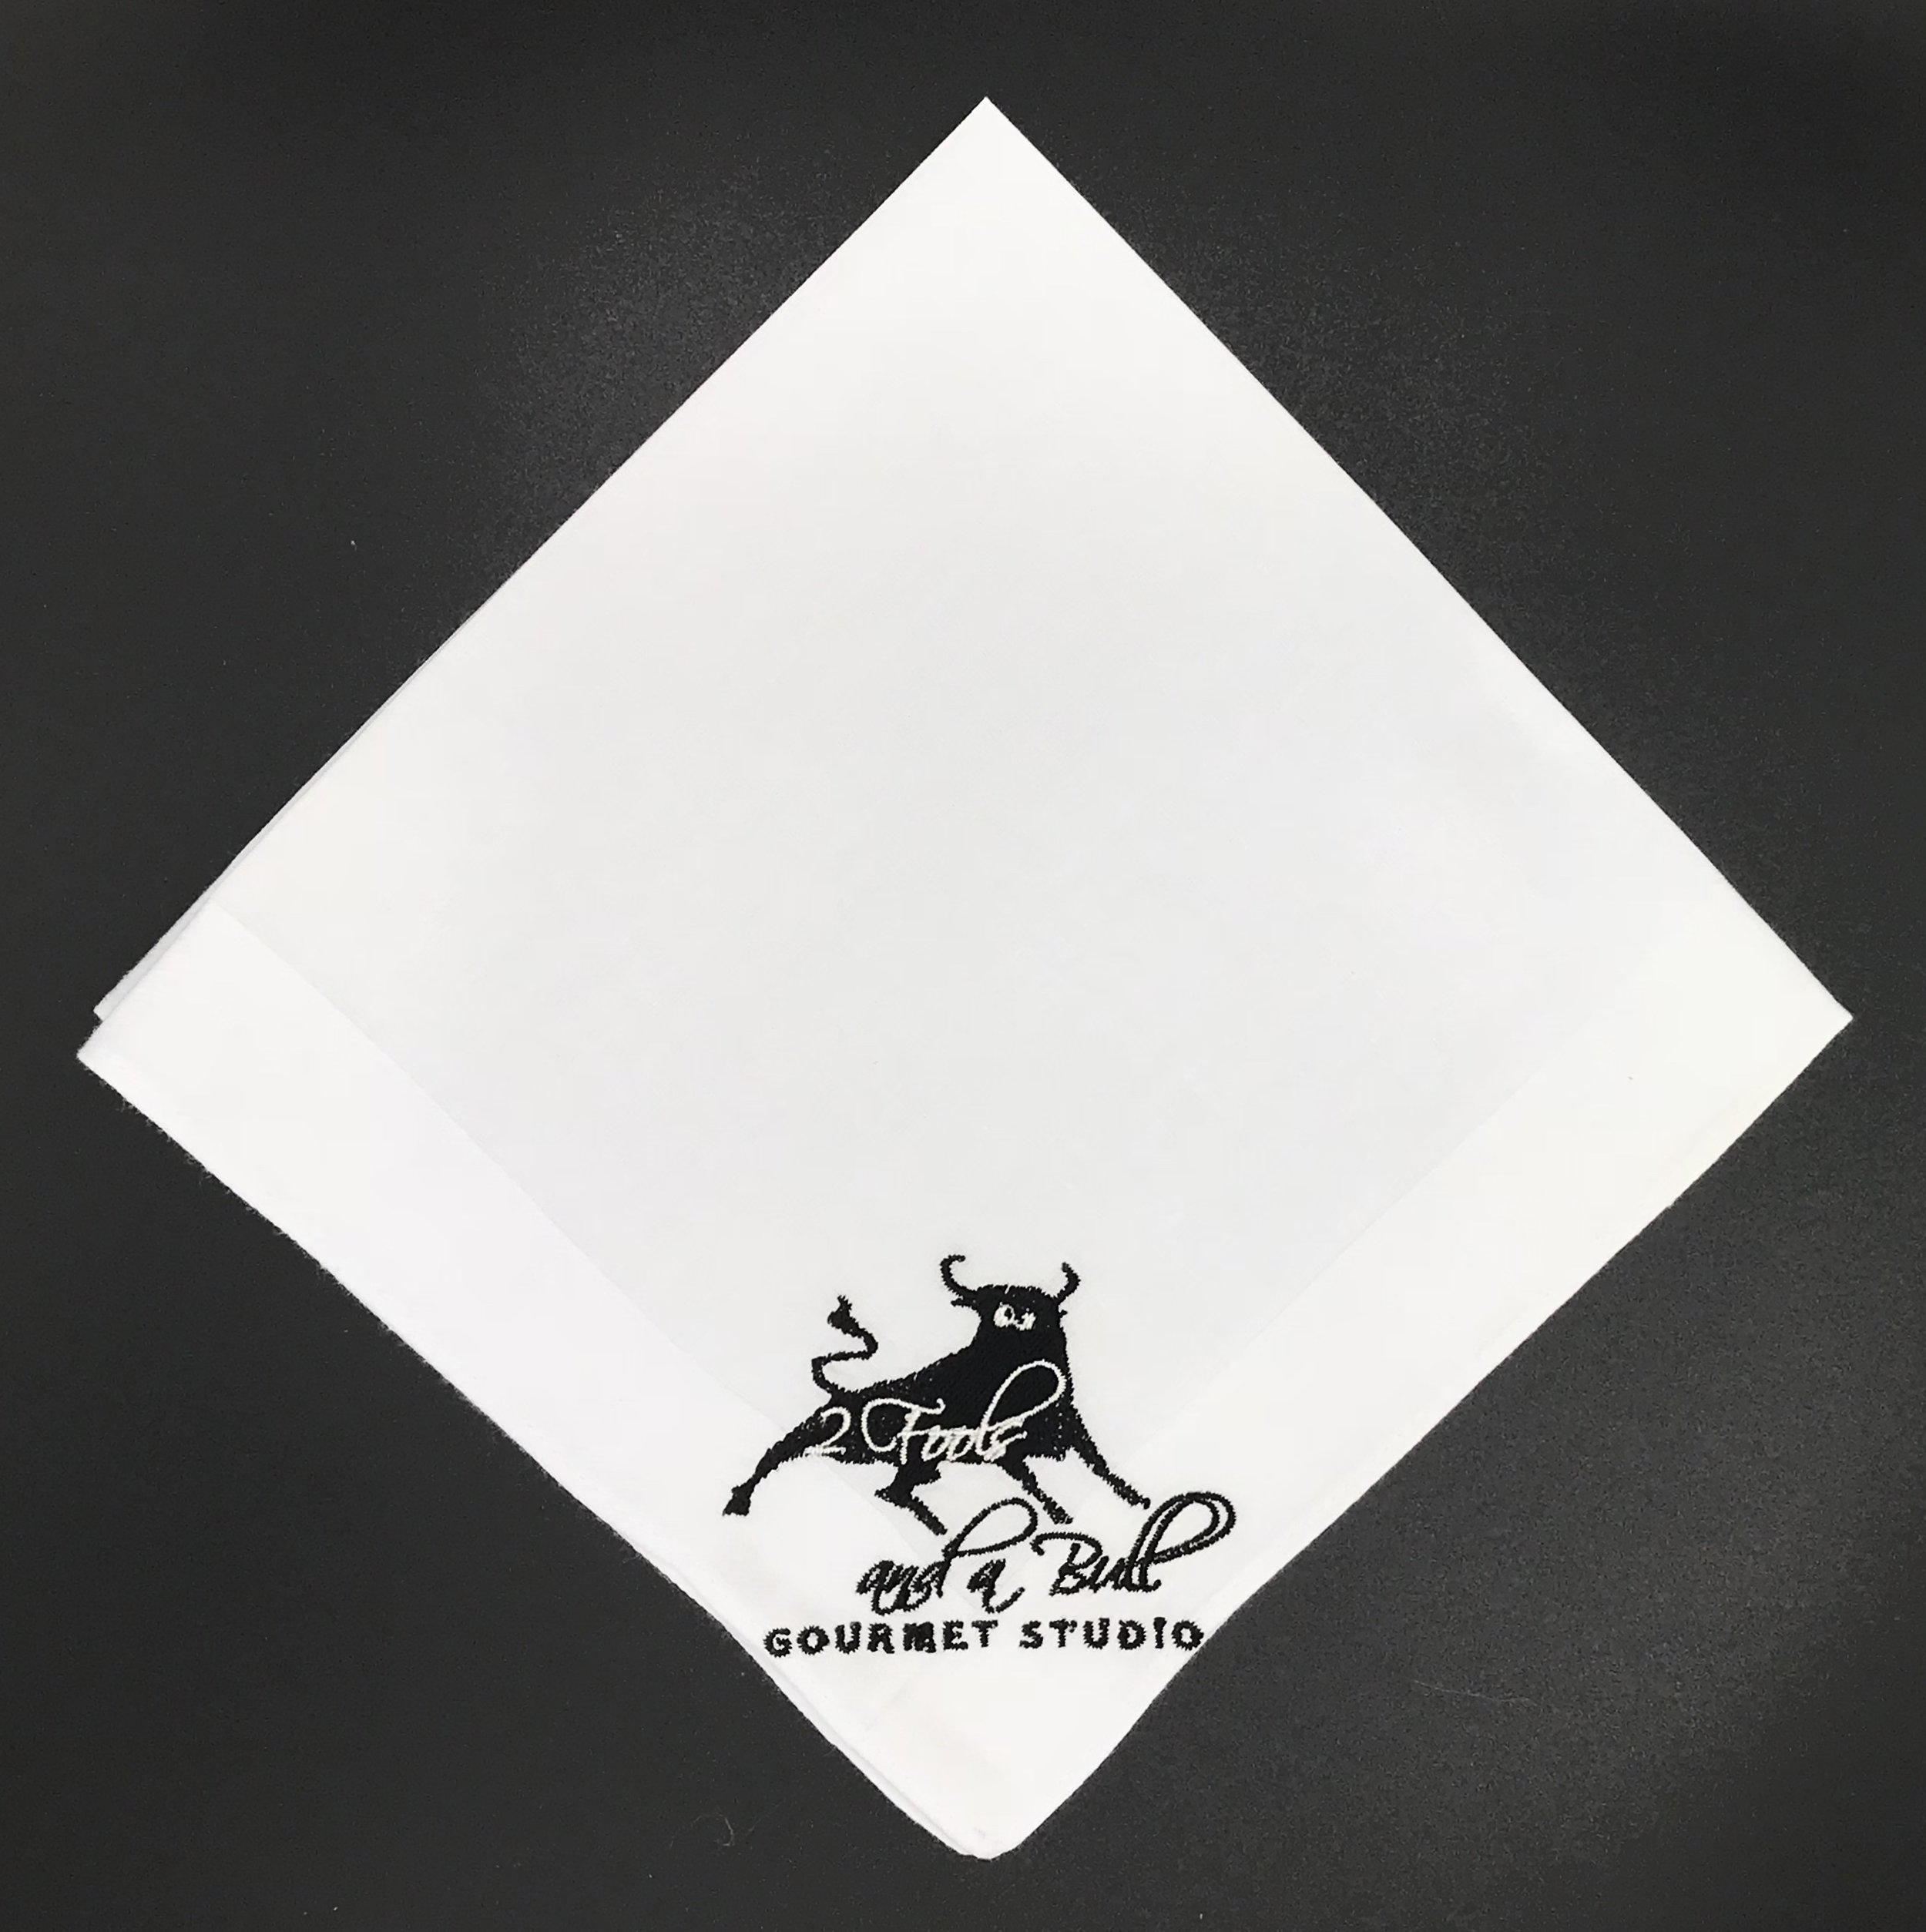 2 Fools and a Bull Gourmet Studio Custom Embroidered Handkerchief